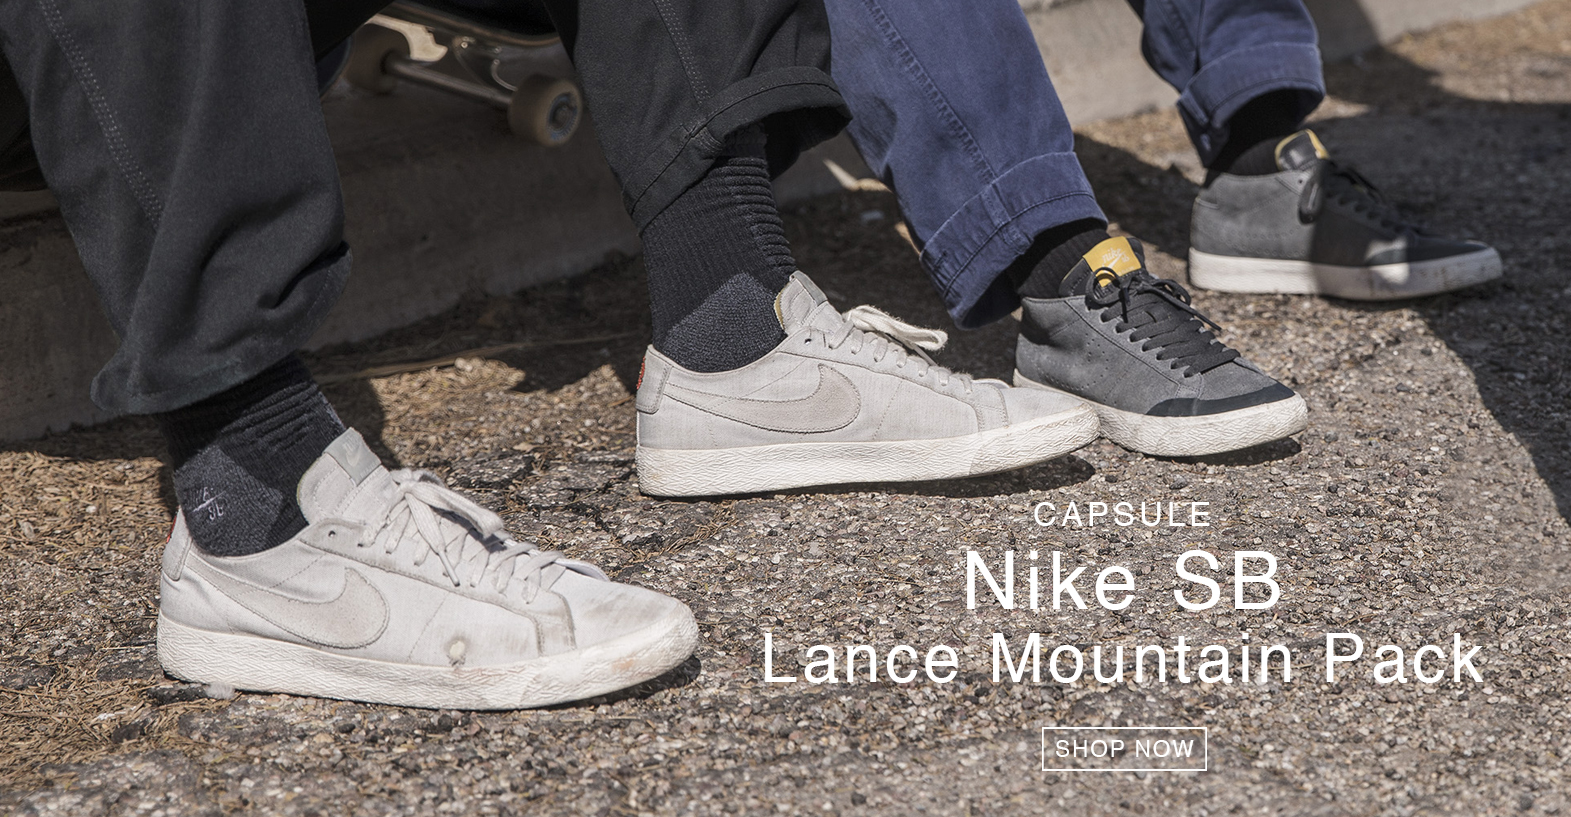 LANCE MOUNTAIN PACK INCOMING